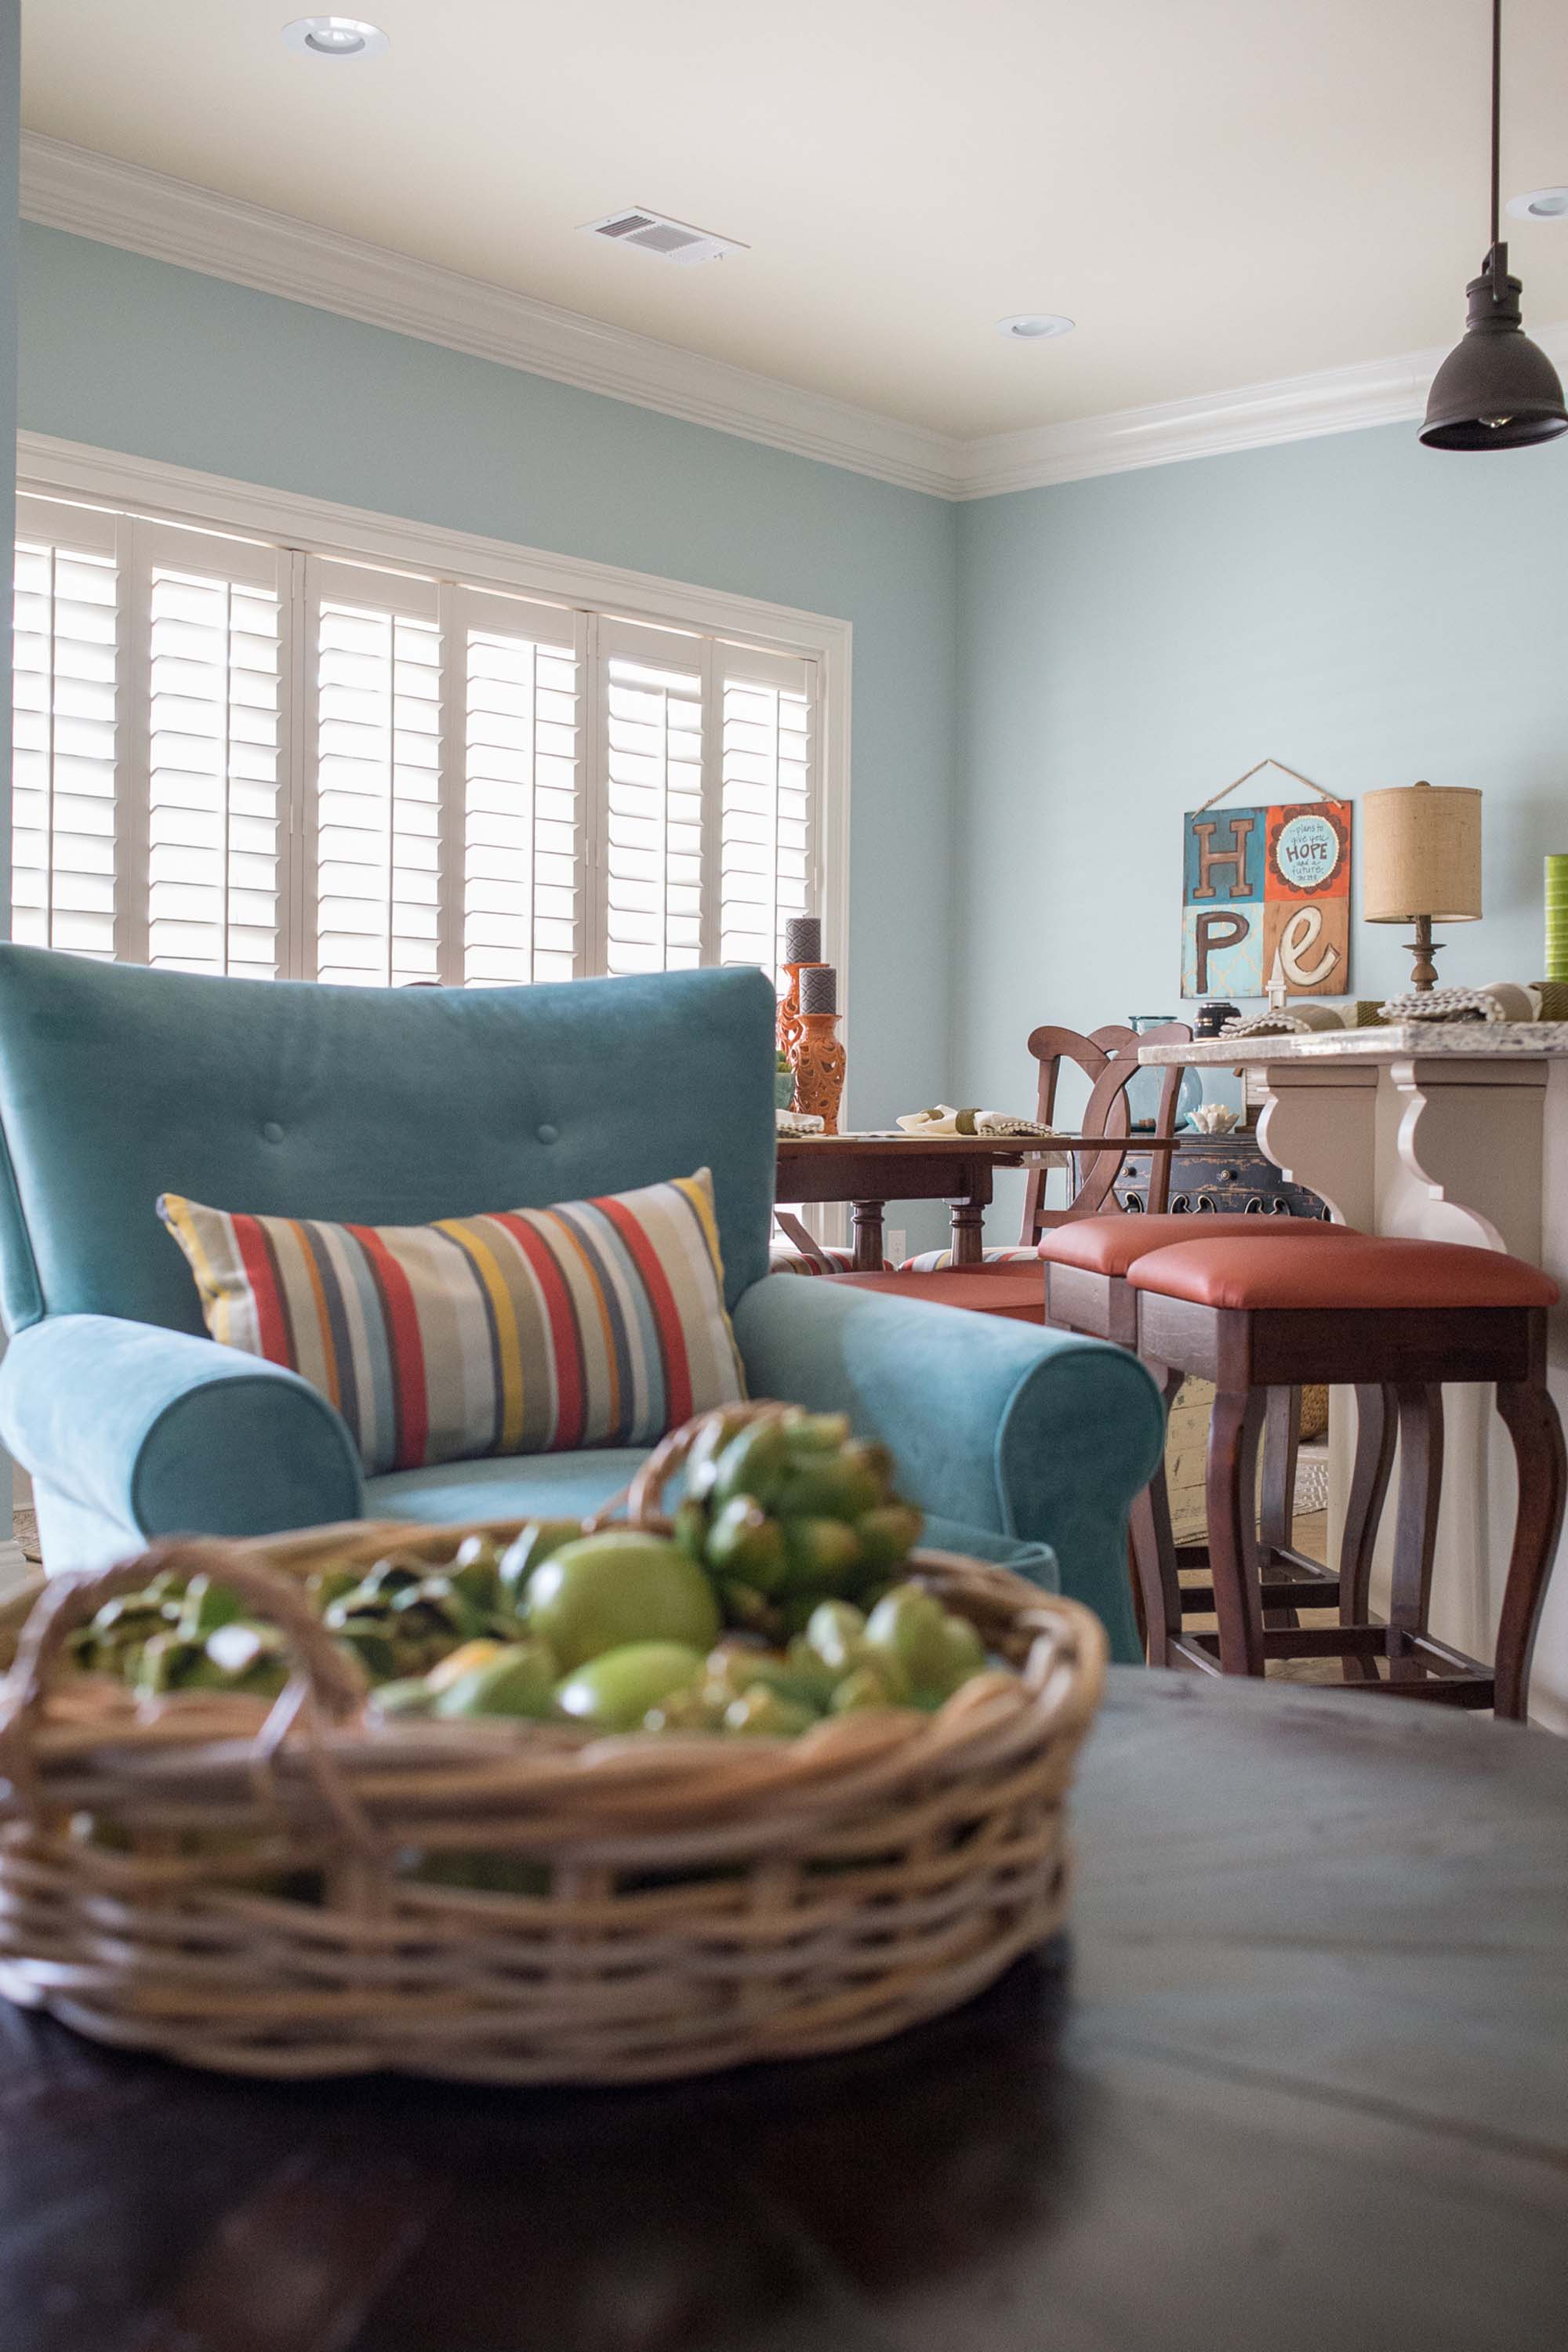 Poolhouse with Custom Furniture, Ottoman, Recovered Barstools and Artichokes